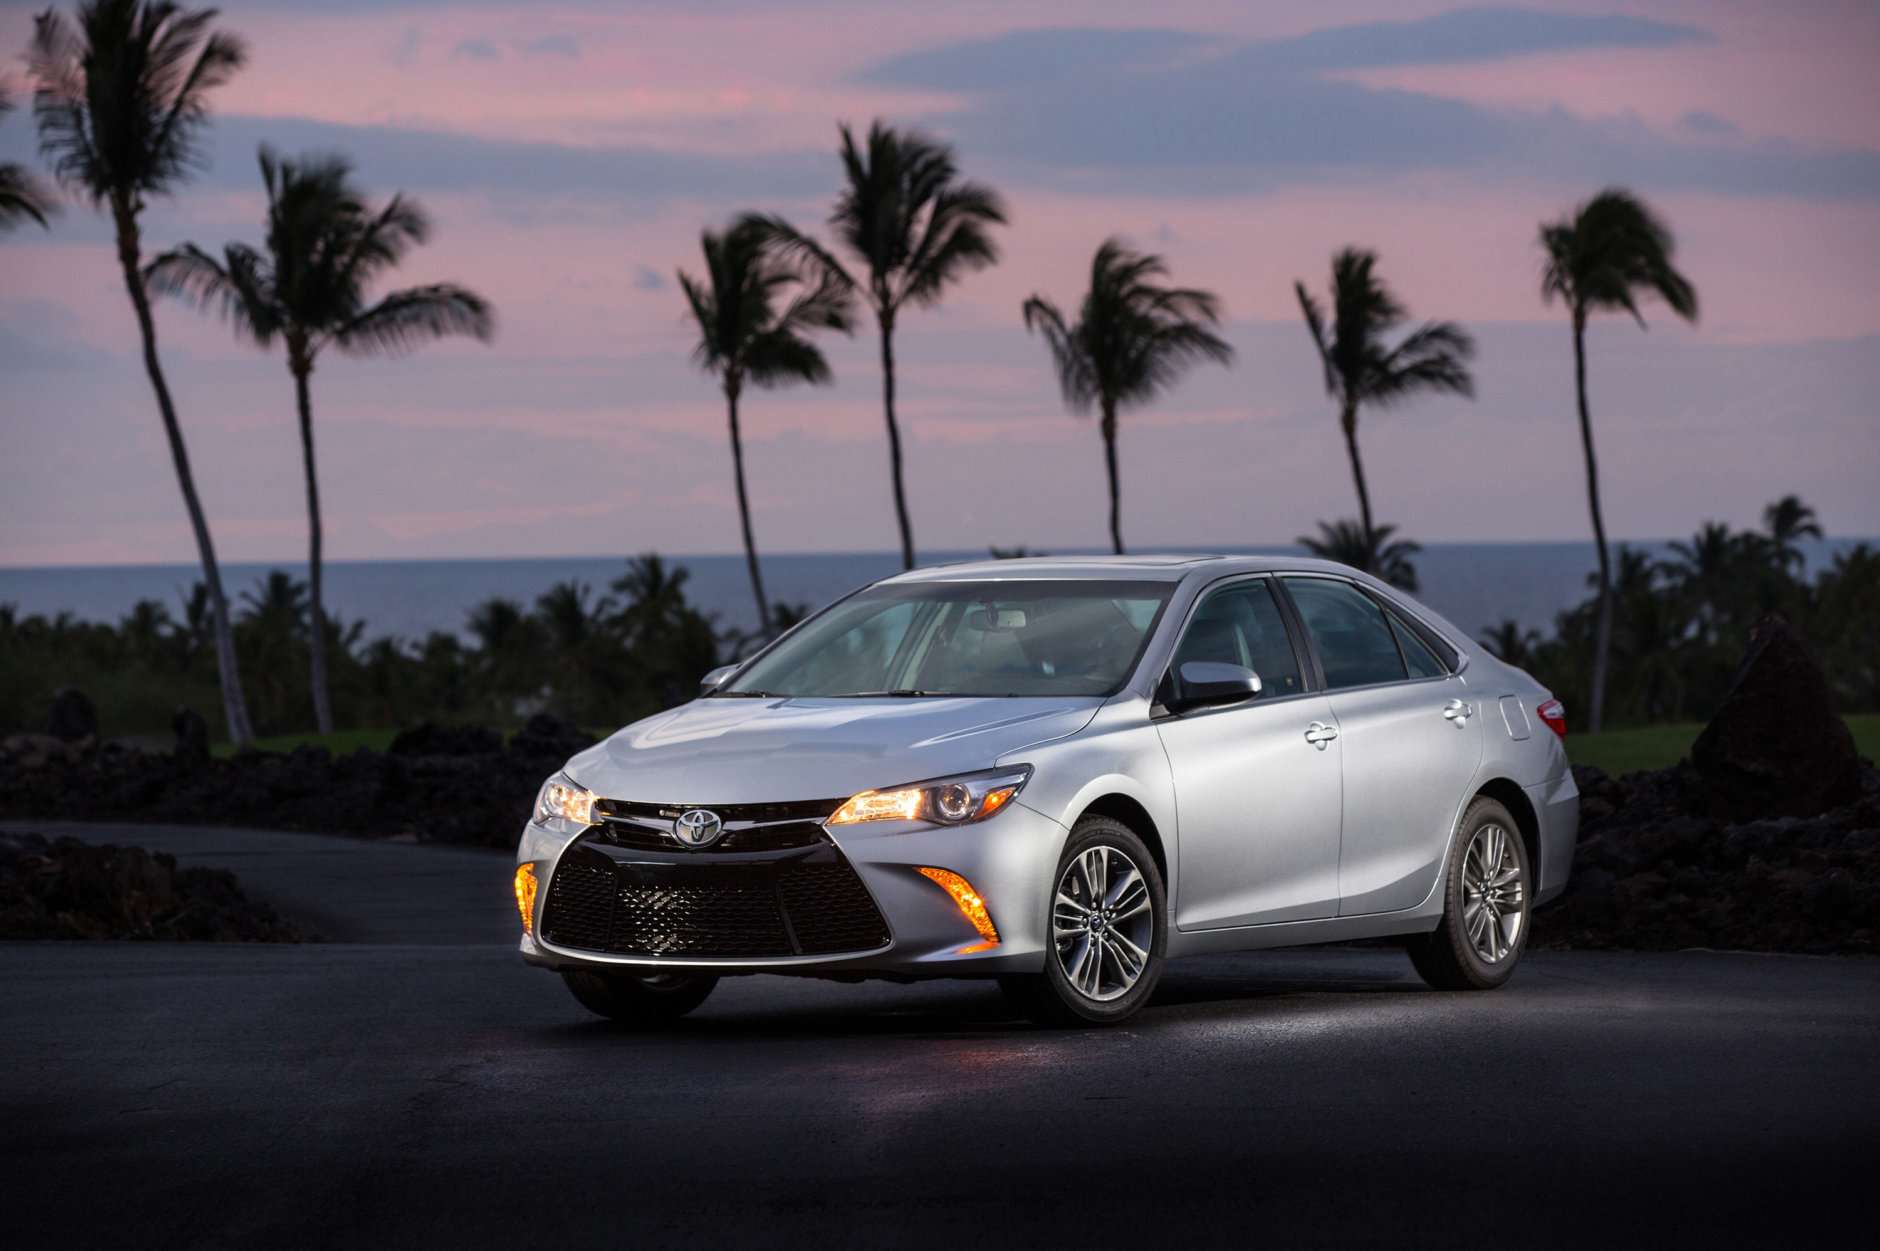 Best Used Midsize Car for Teens:  The 2015 Toyota Camry  (Courtesy Toyota Motor Sales USA)